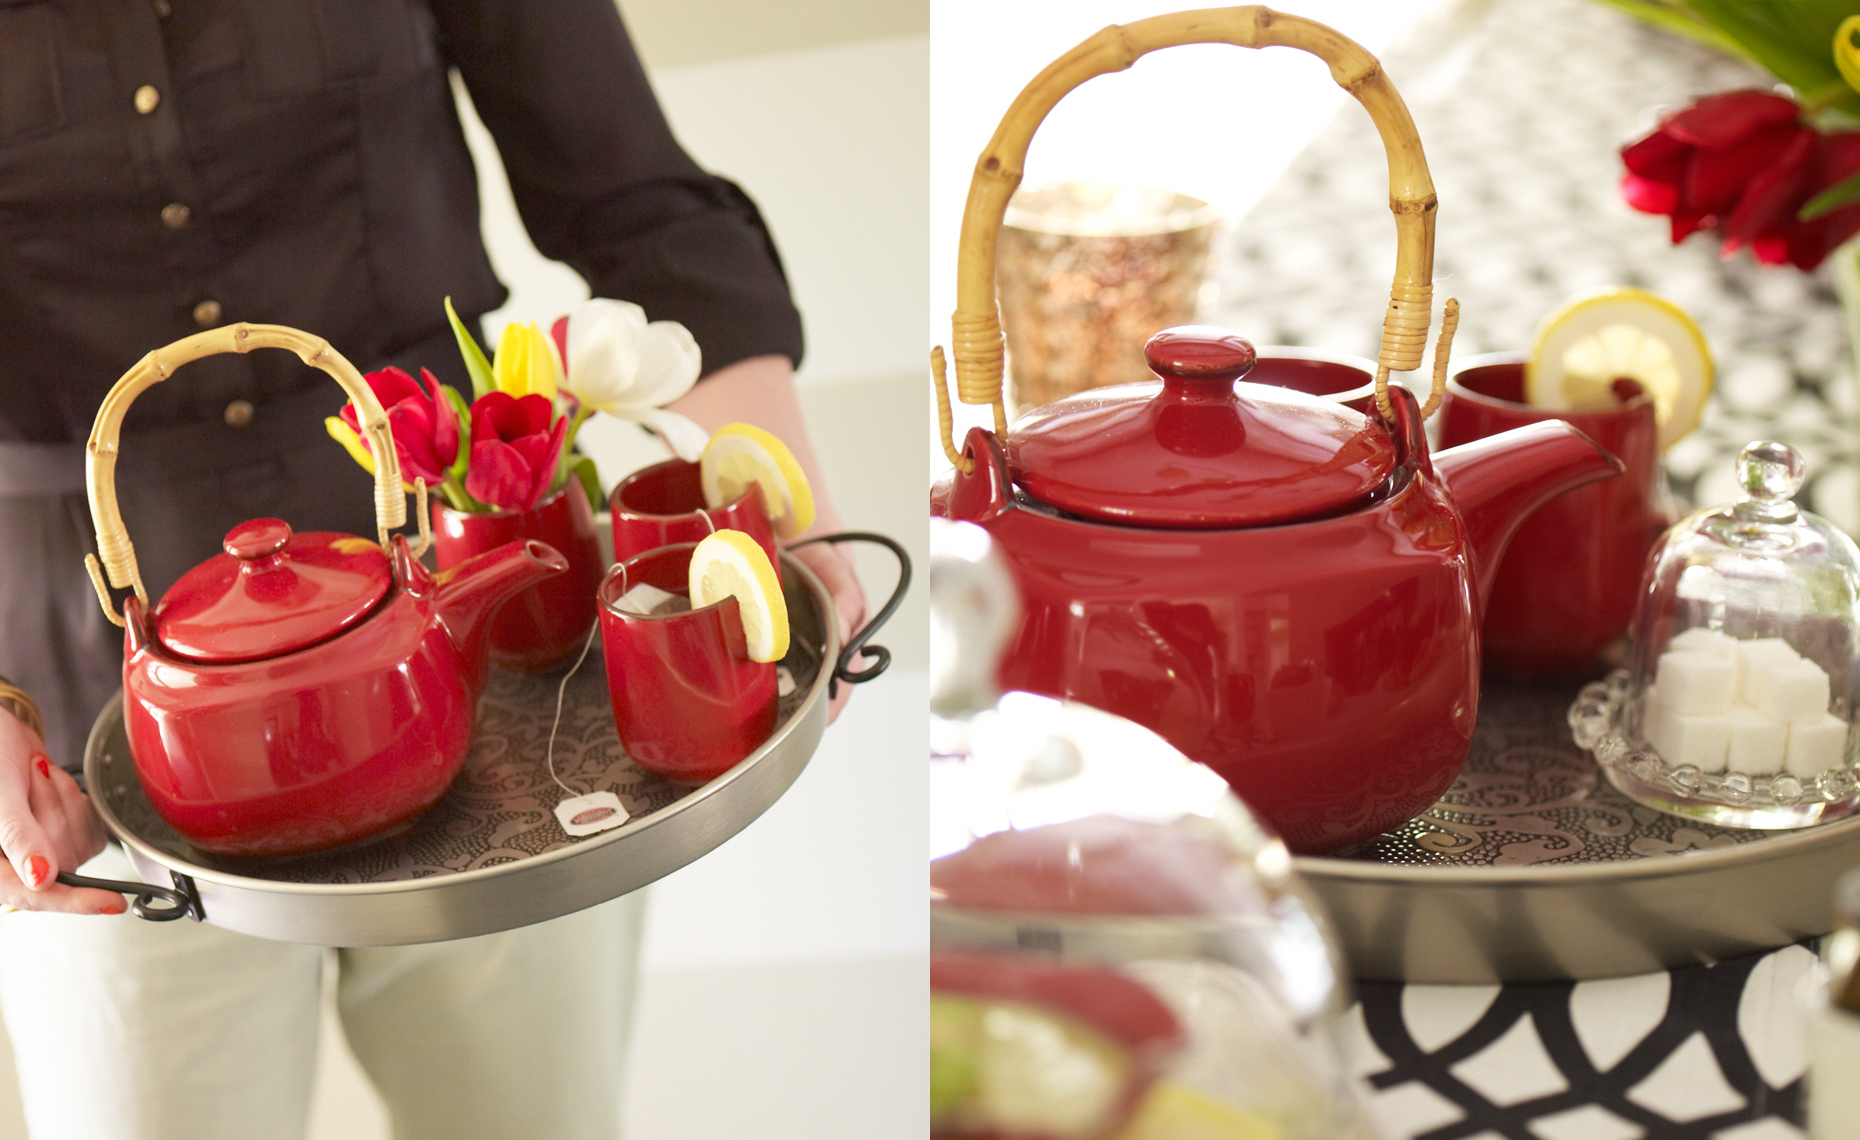 Red Tea Set Double Spread.jpg